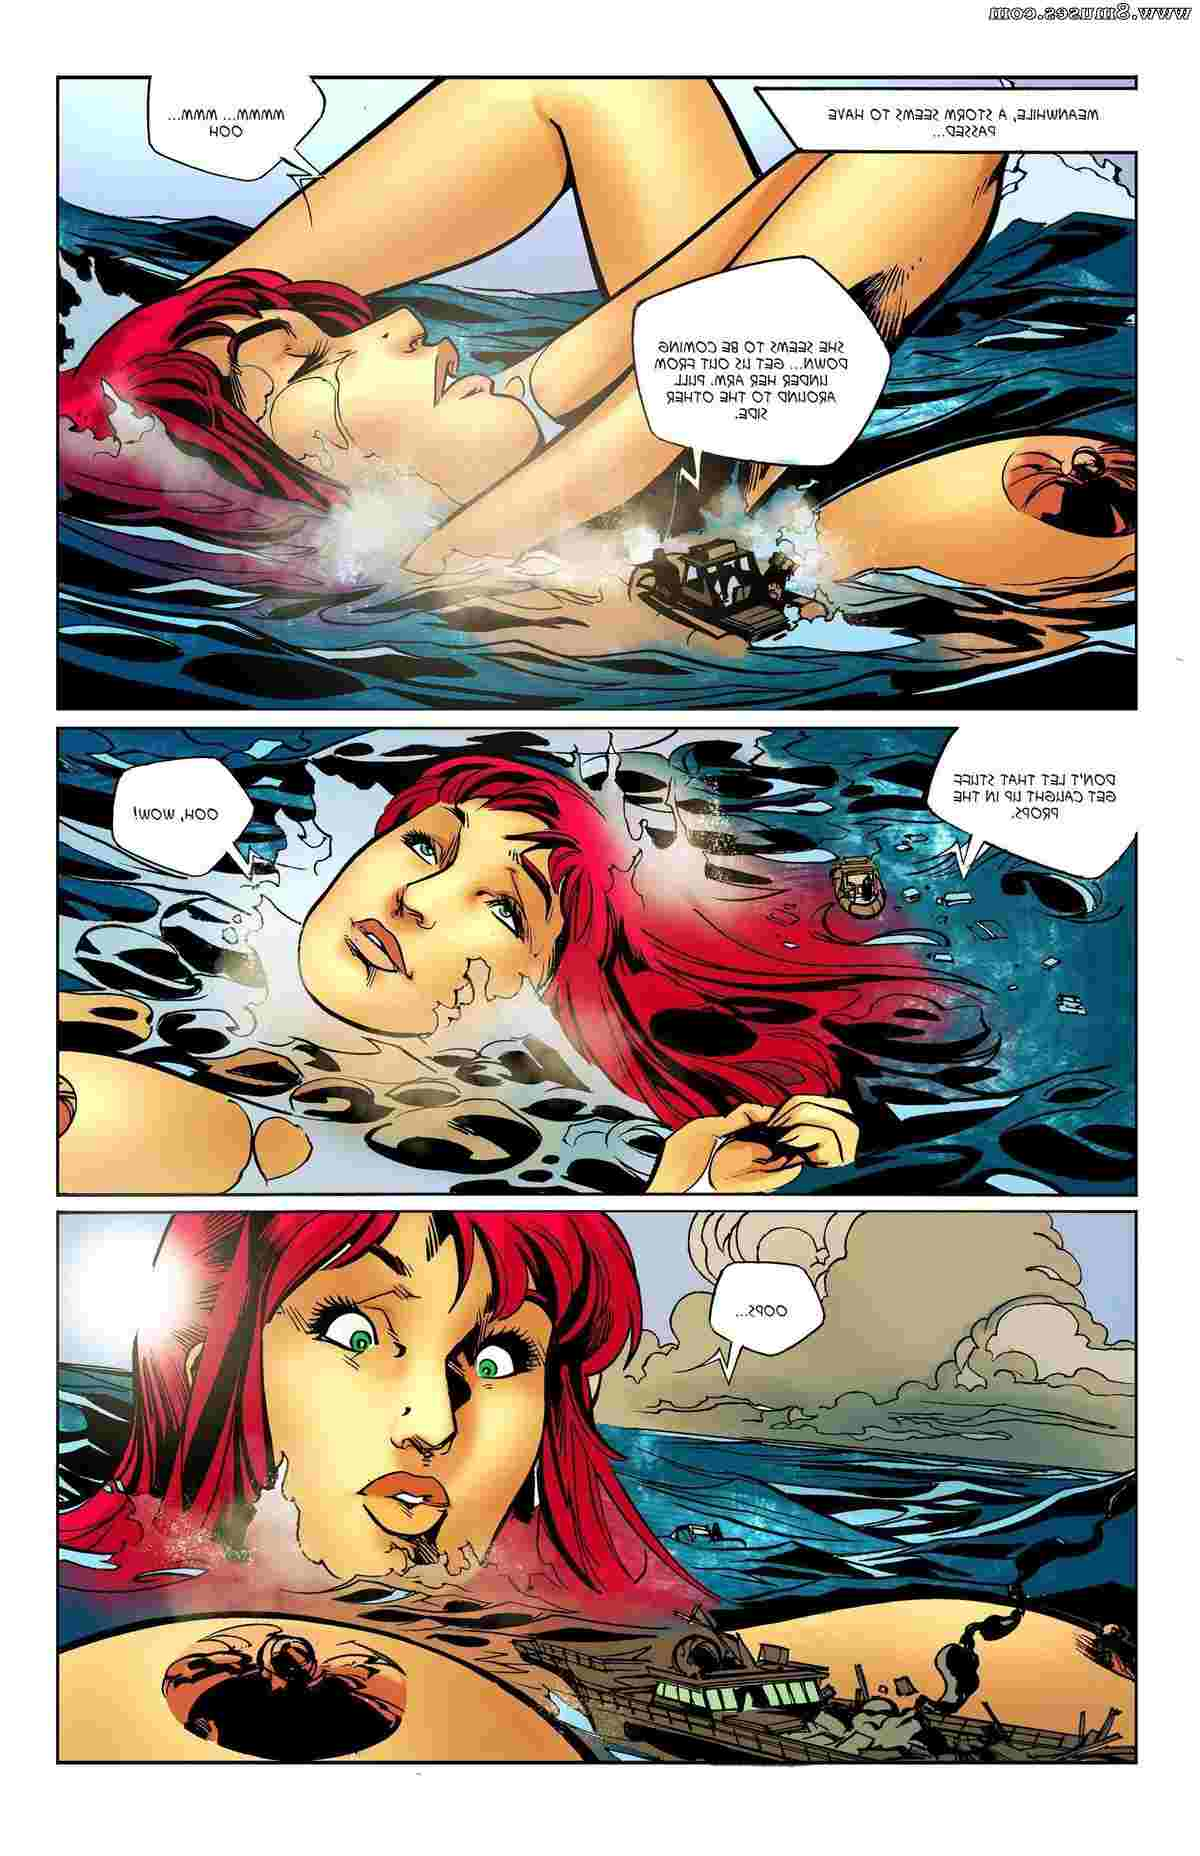 Giantess-Club-Comics/Bubbling-Up-from-the-Abyss Bubbling_Up_from_the_Abyss__8muses_-_Sex_and_Porn_Comics_58.jpg